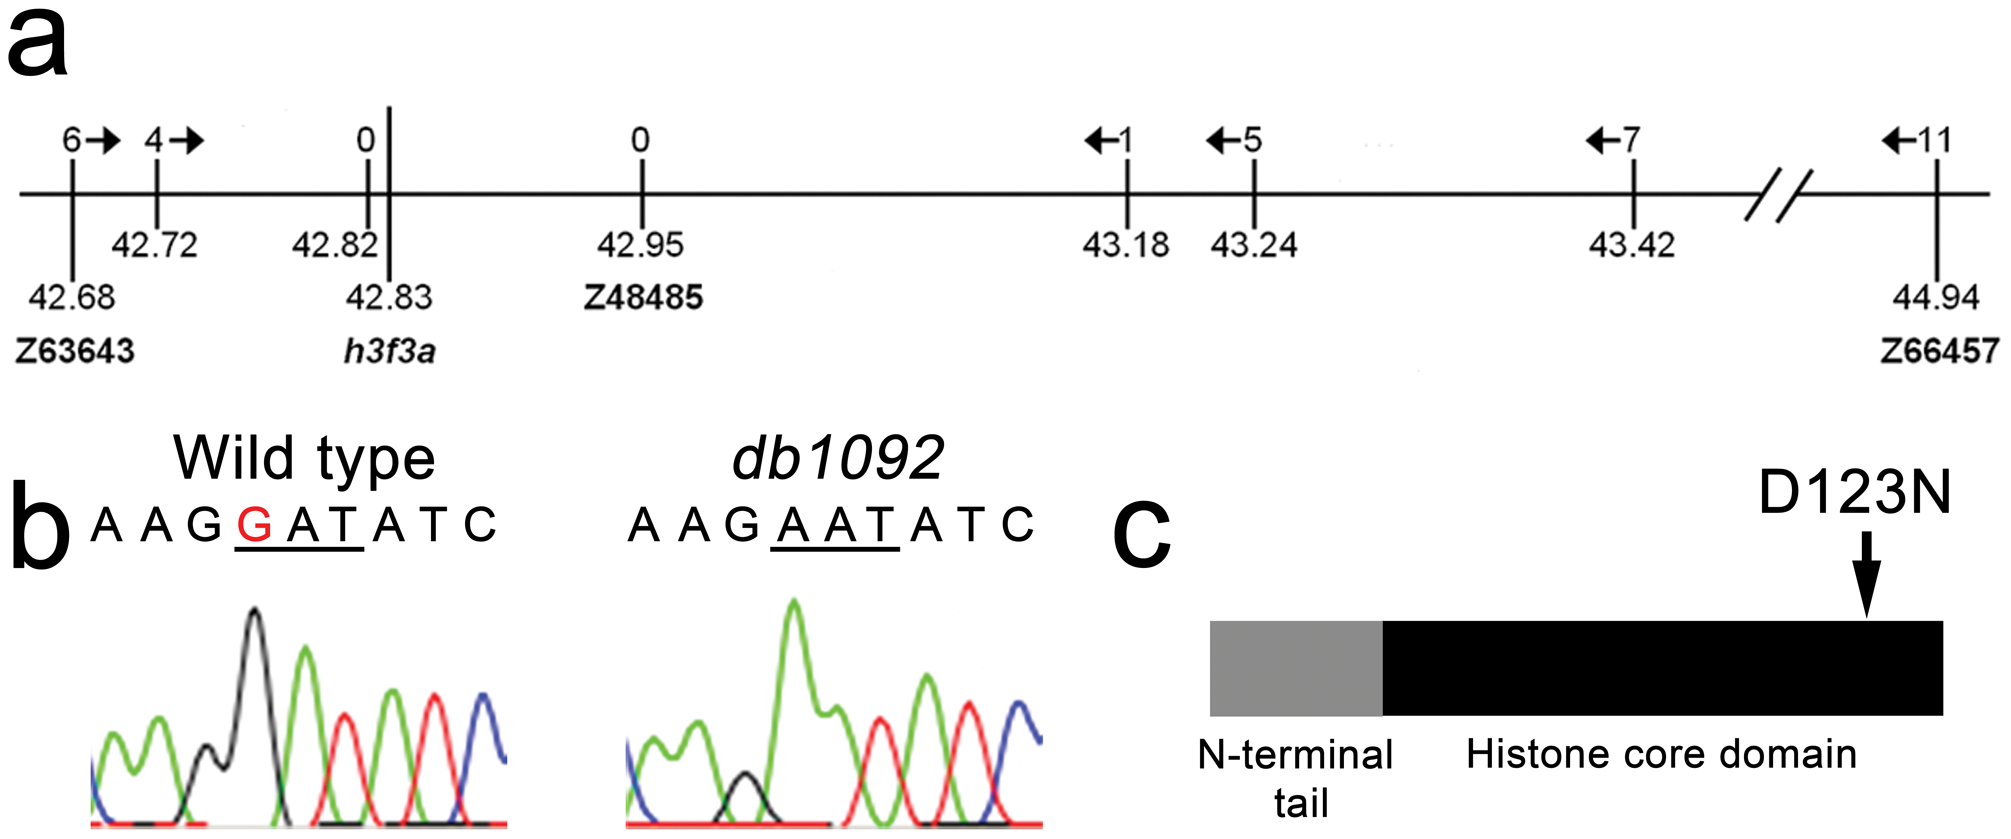 Identification of the <i>h3f3a<sup>db1092</sup></i> lesion.